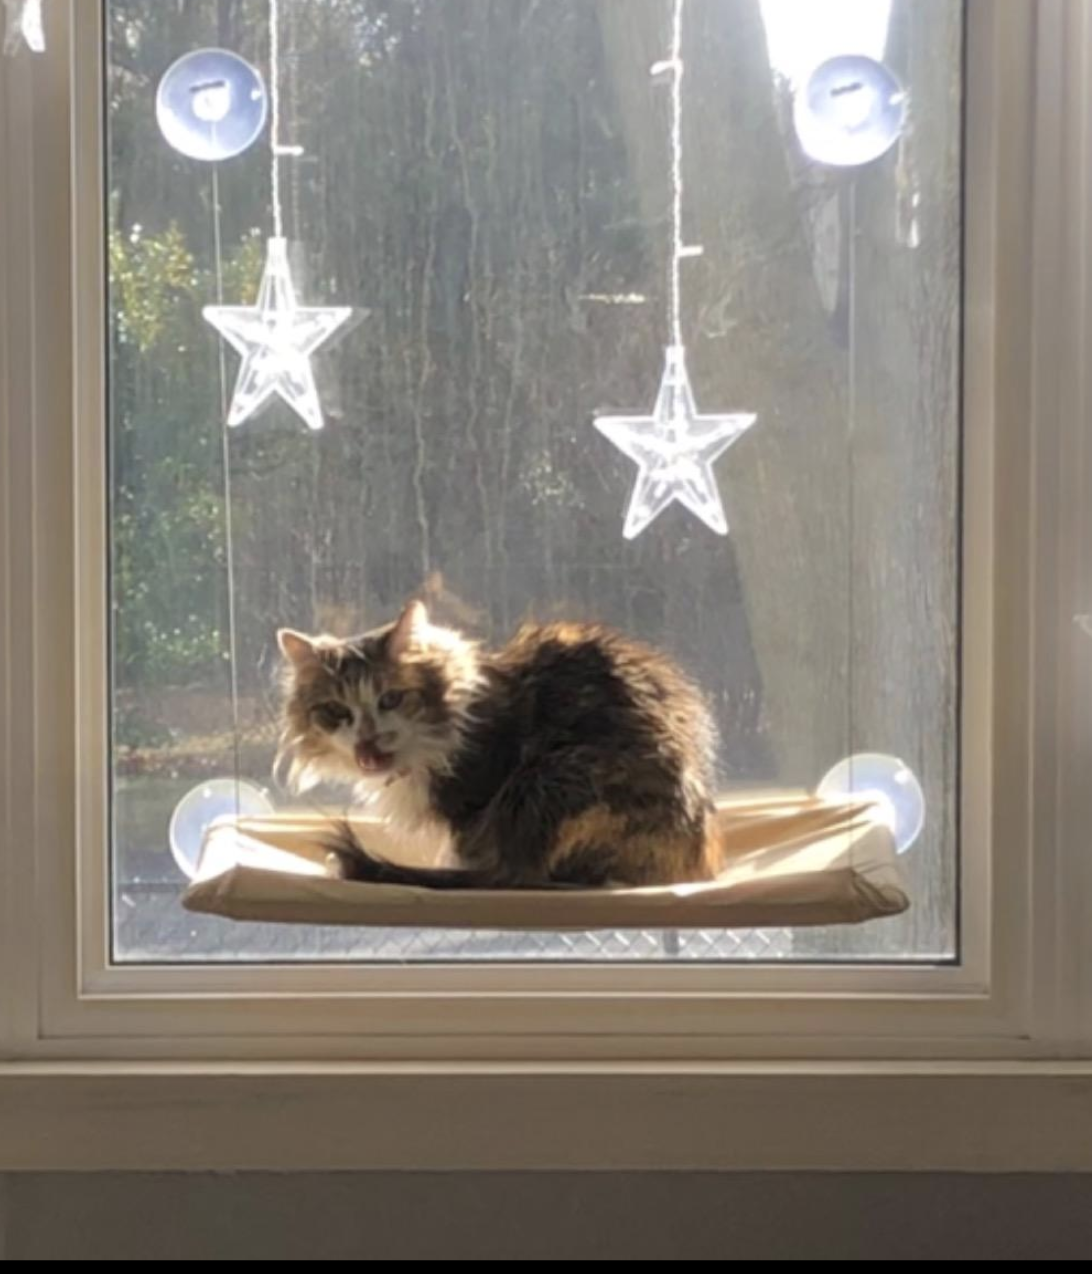 A cat resting in a hammock attached to the window with four suction cups